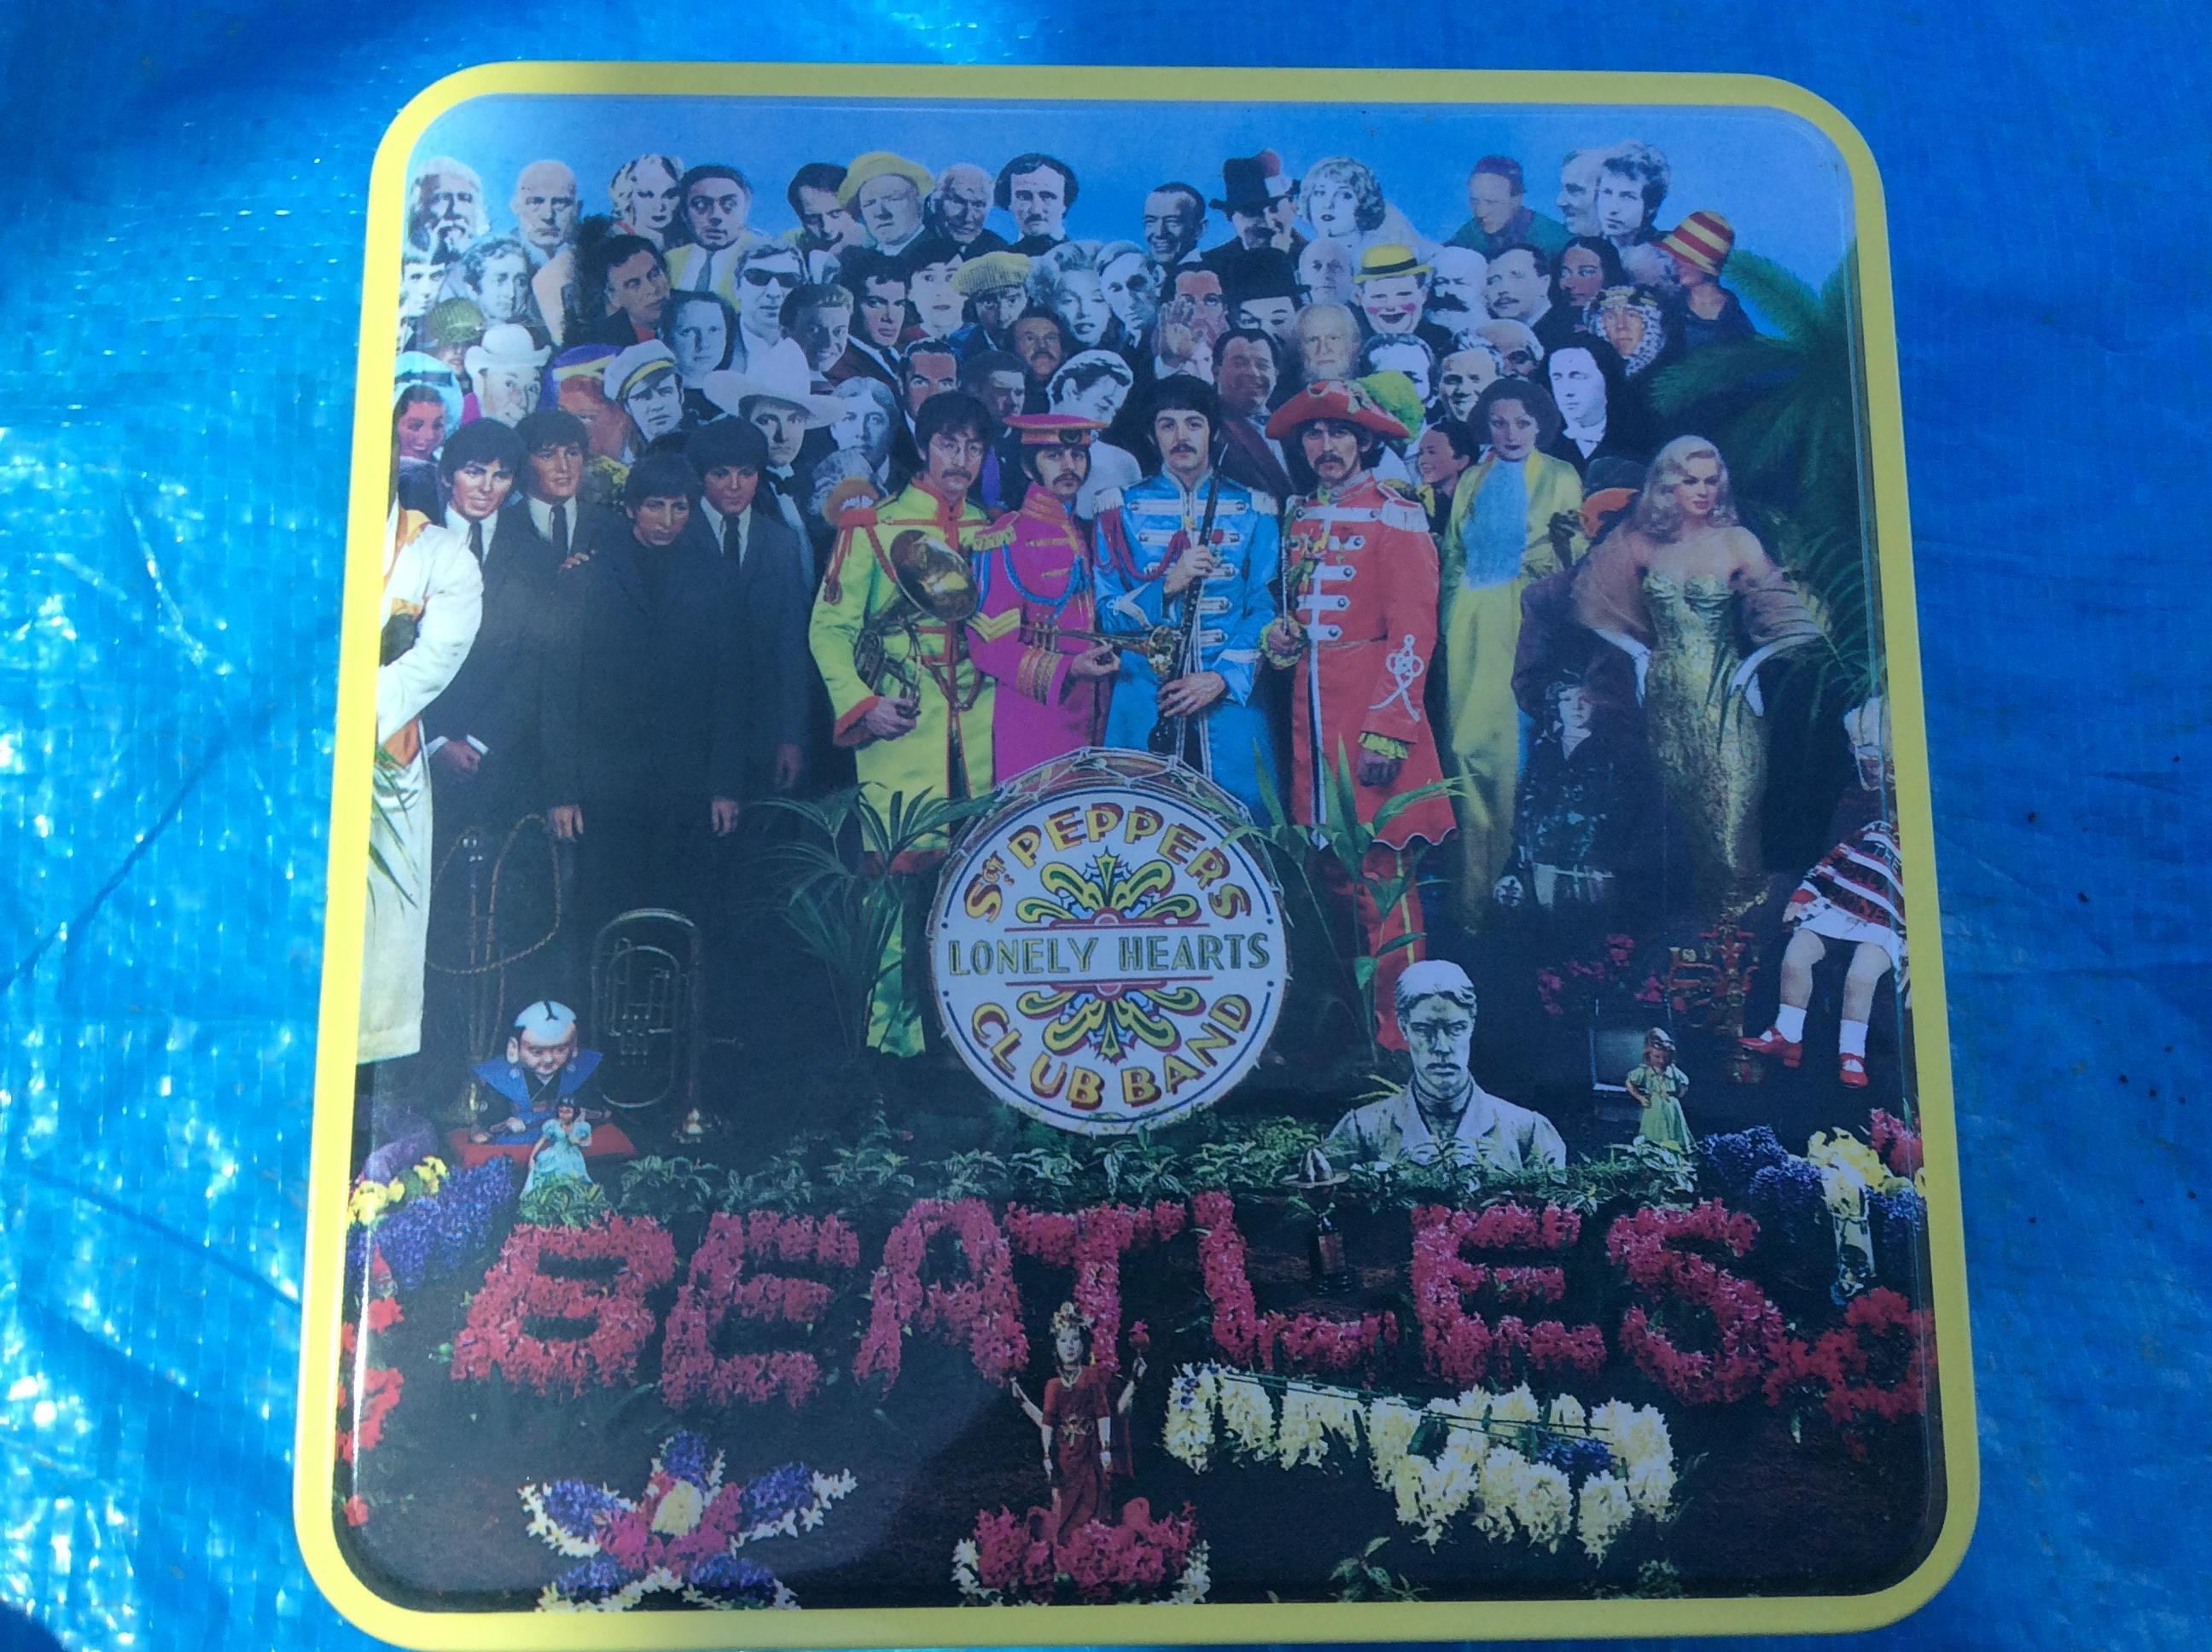 Beatles puzzle of Sgt. Peppers.